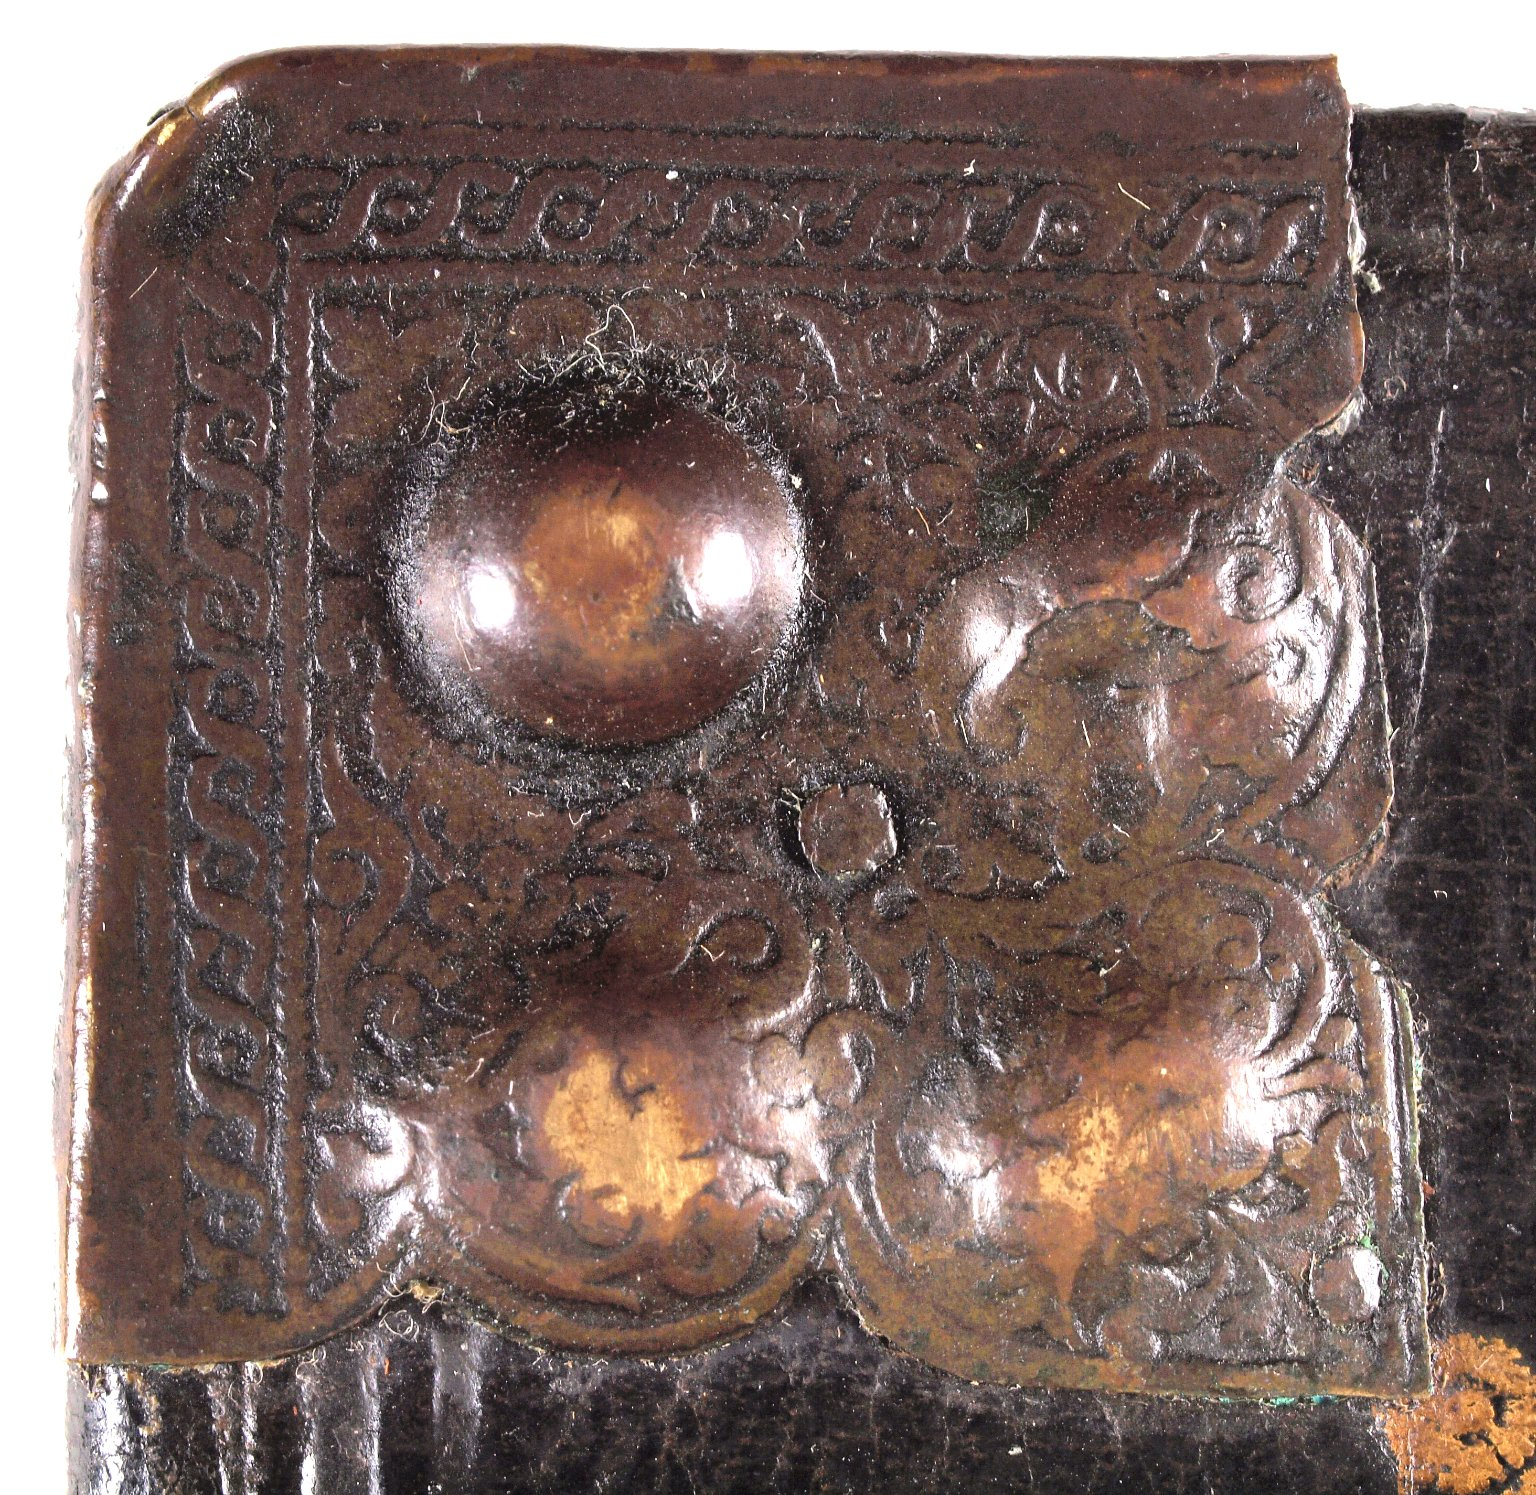 Cover boss (detail), ac 161230